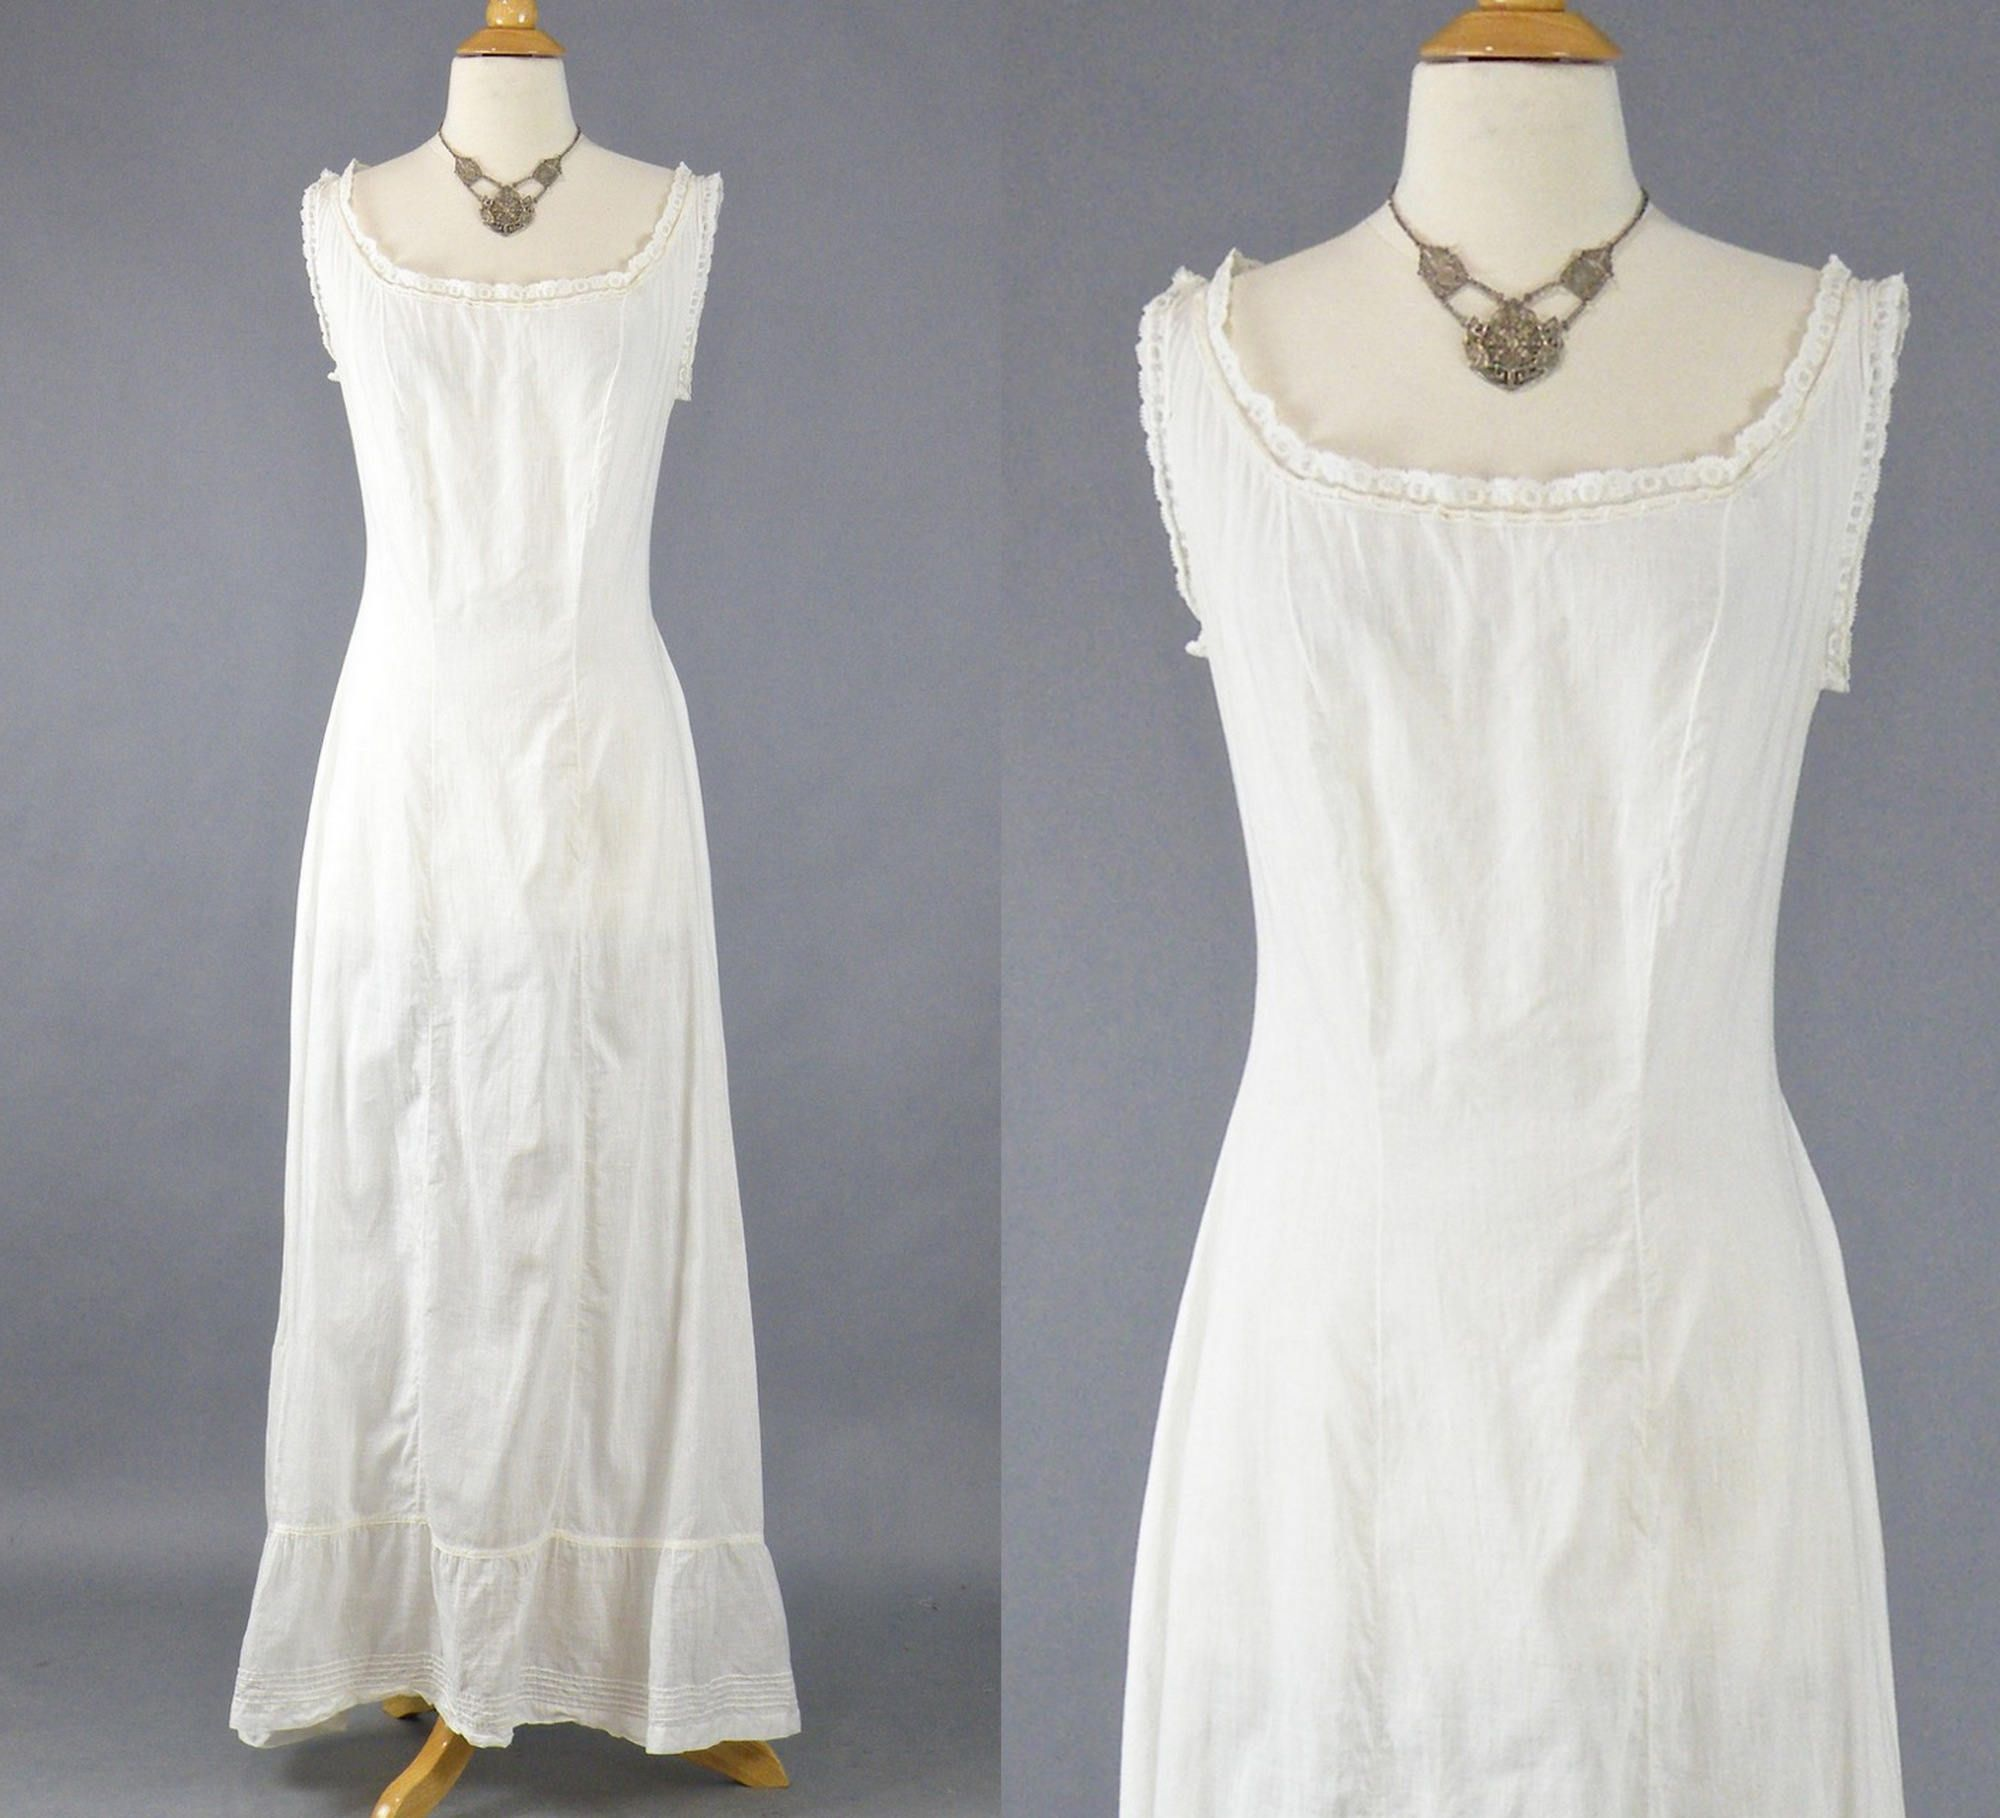 Edwardian Chemise Dress, 1900s White Cotton Slip Dress, Antique ...